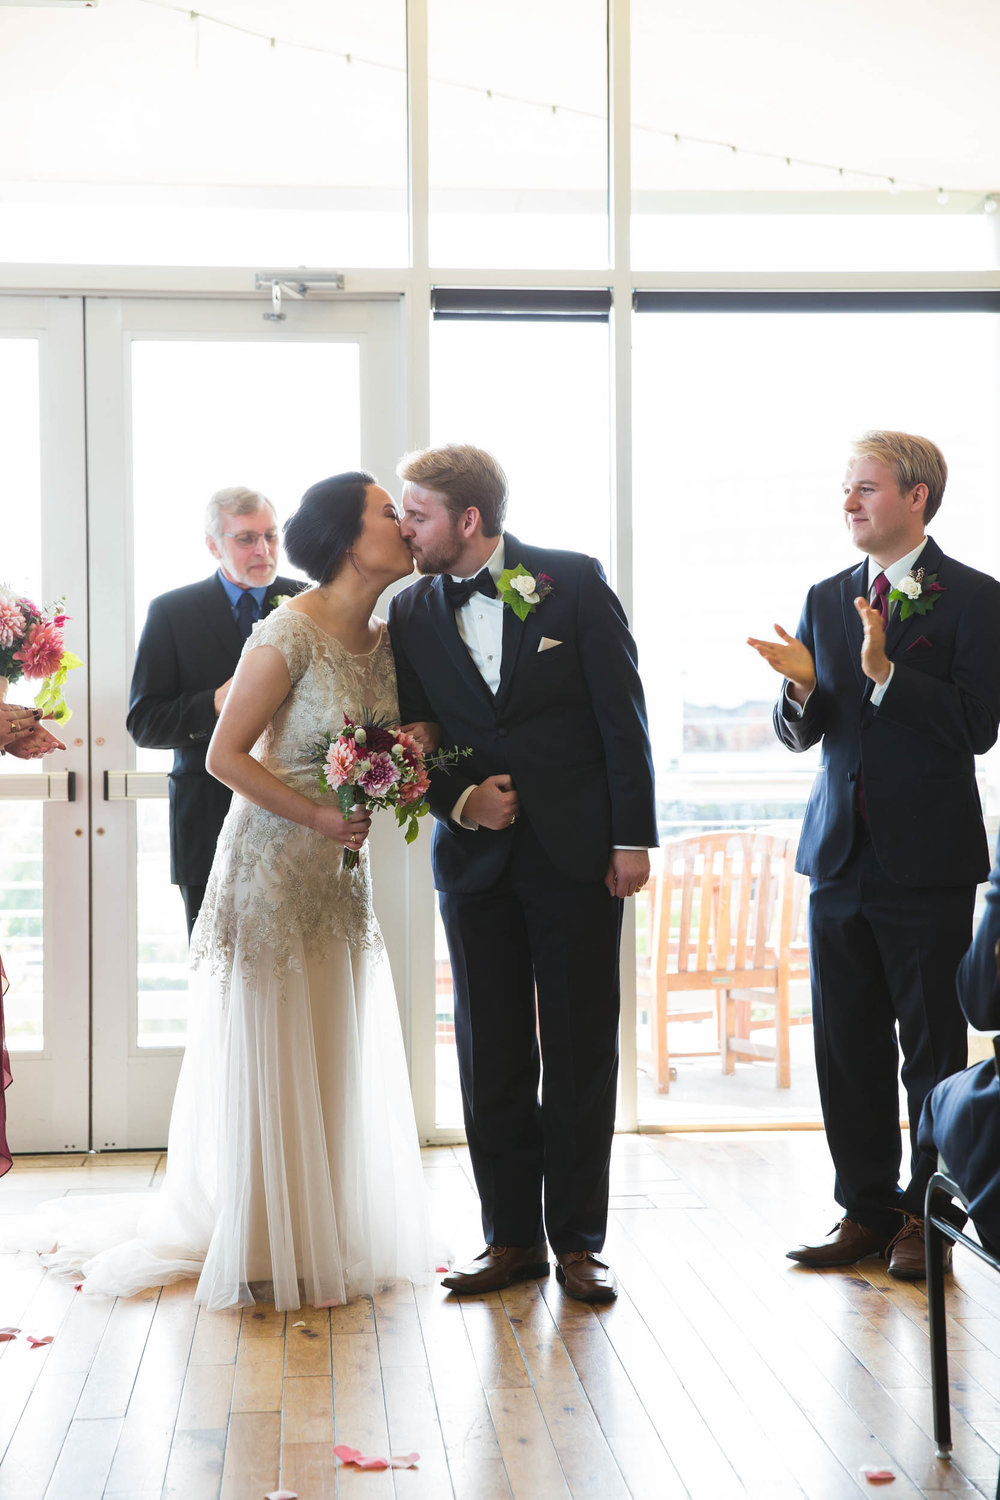 courtney and tom's wedding at pinstripes by anna schultz photography-58.jpg